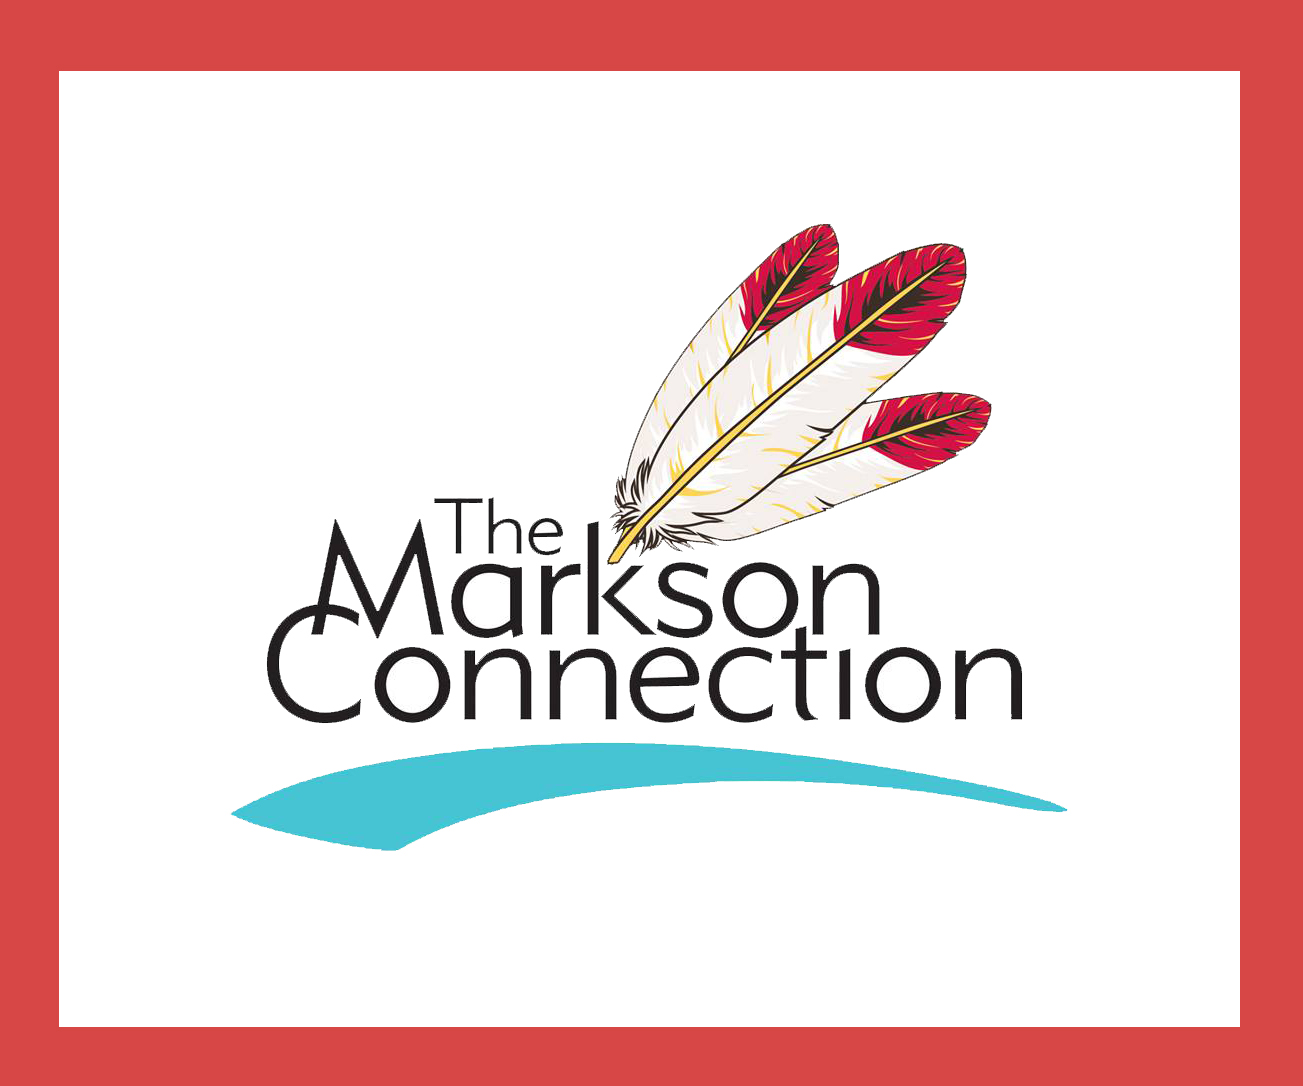 The Markson Connection